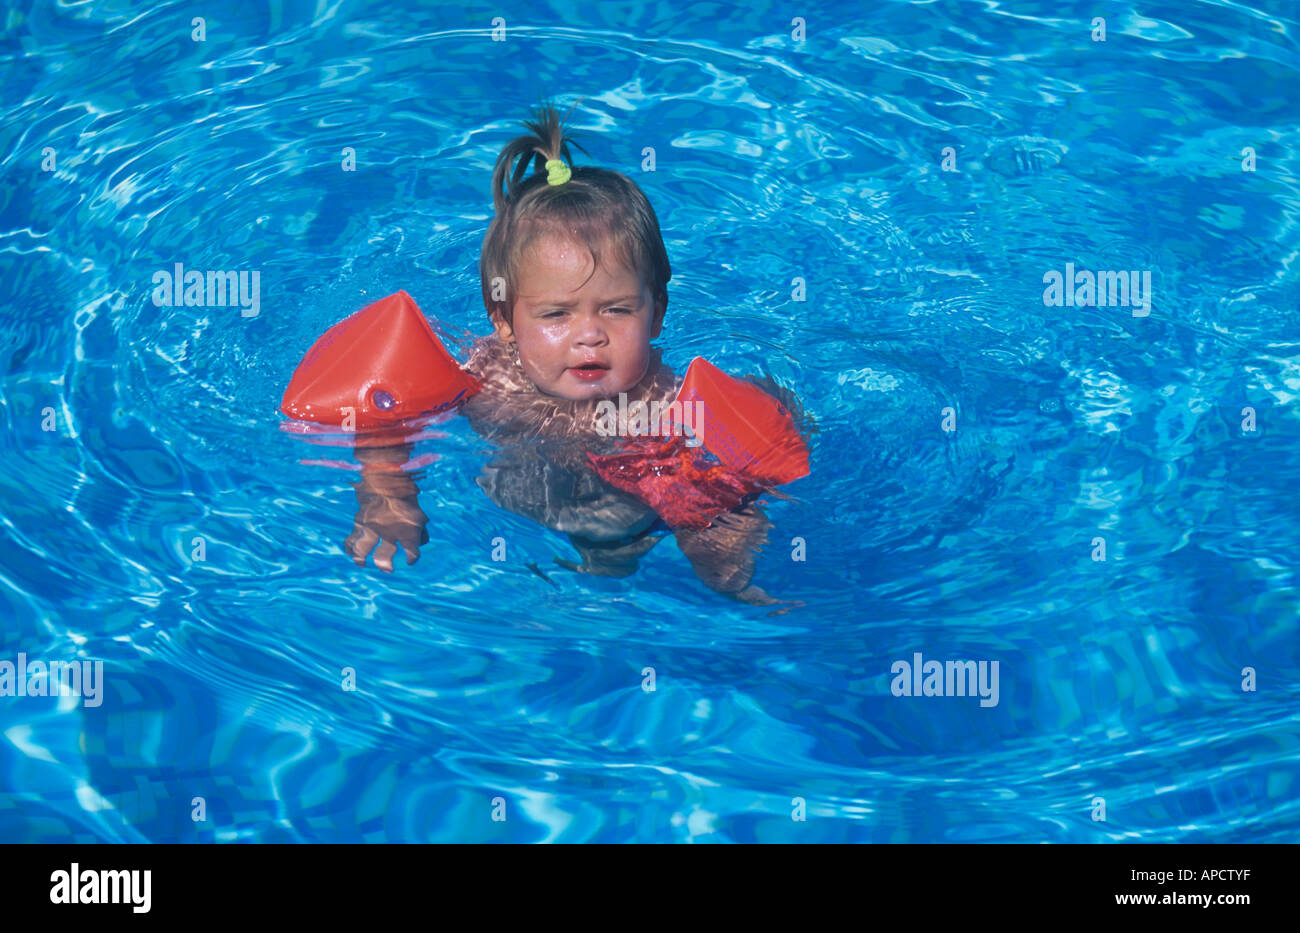 Swimming Pool Wings : Baby girl age months in swimming pool with water